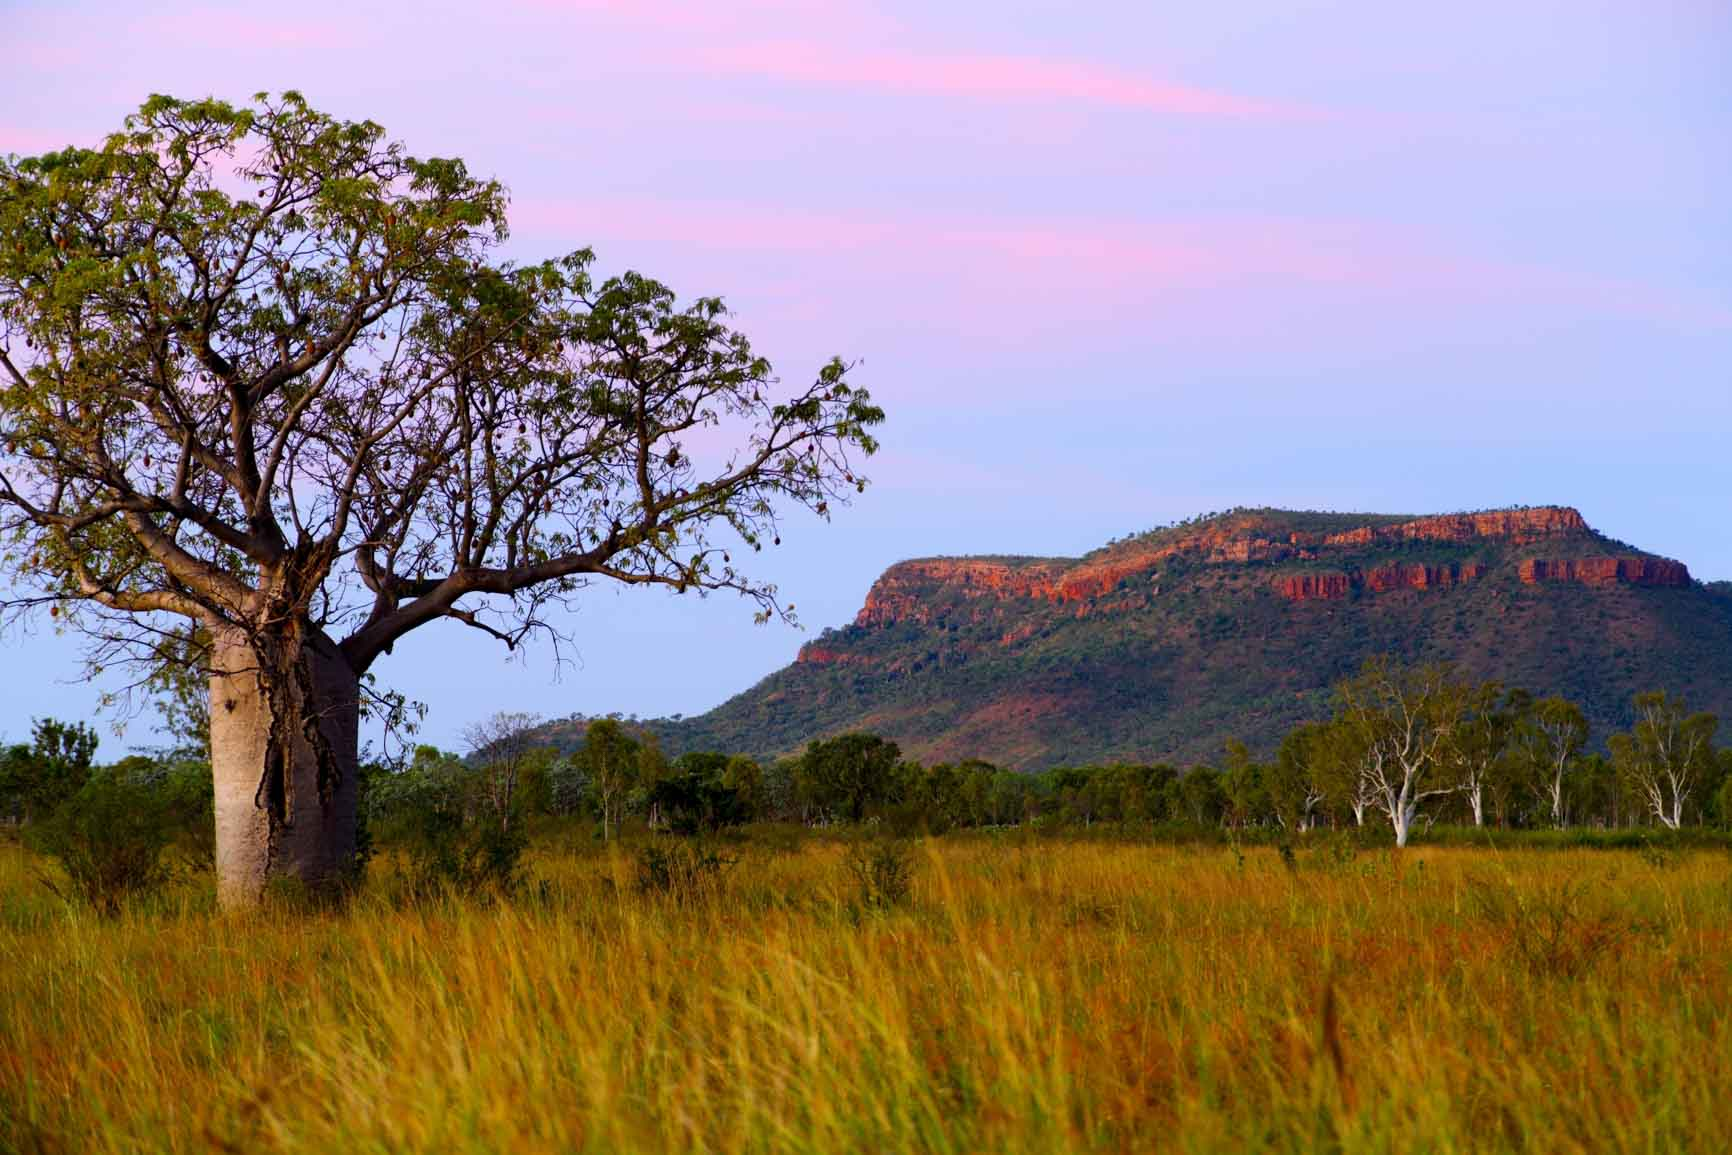 Large Tree infront of mountain in Central Kimberley Region